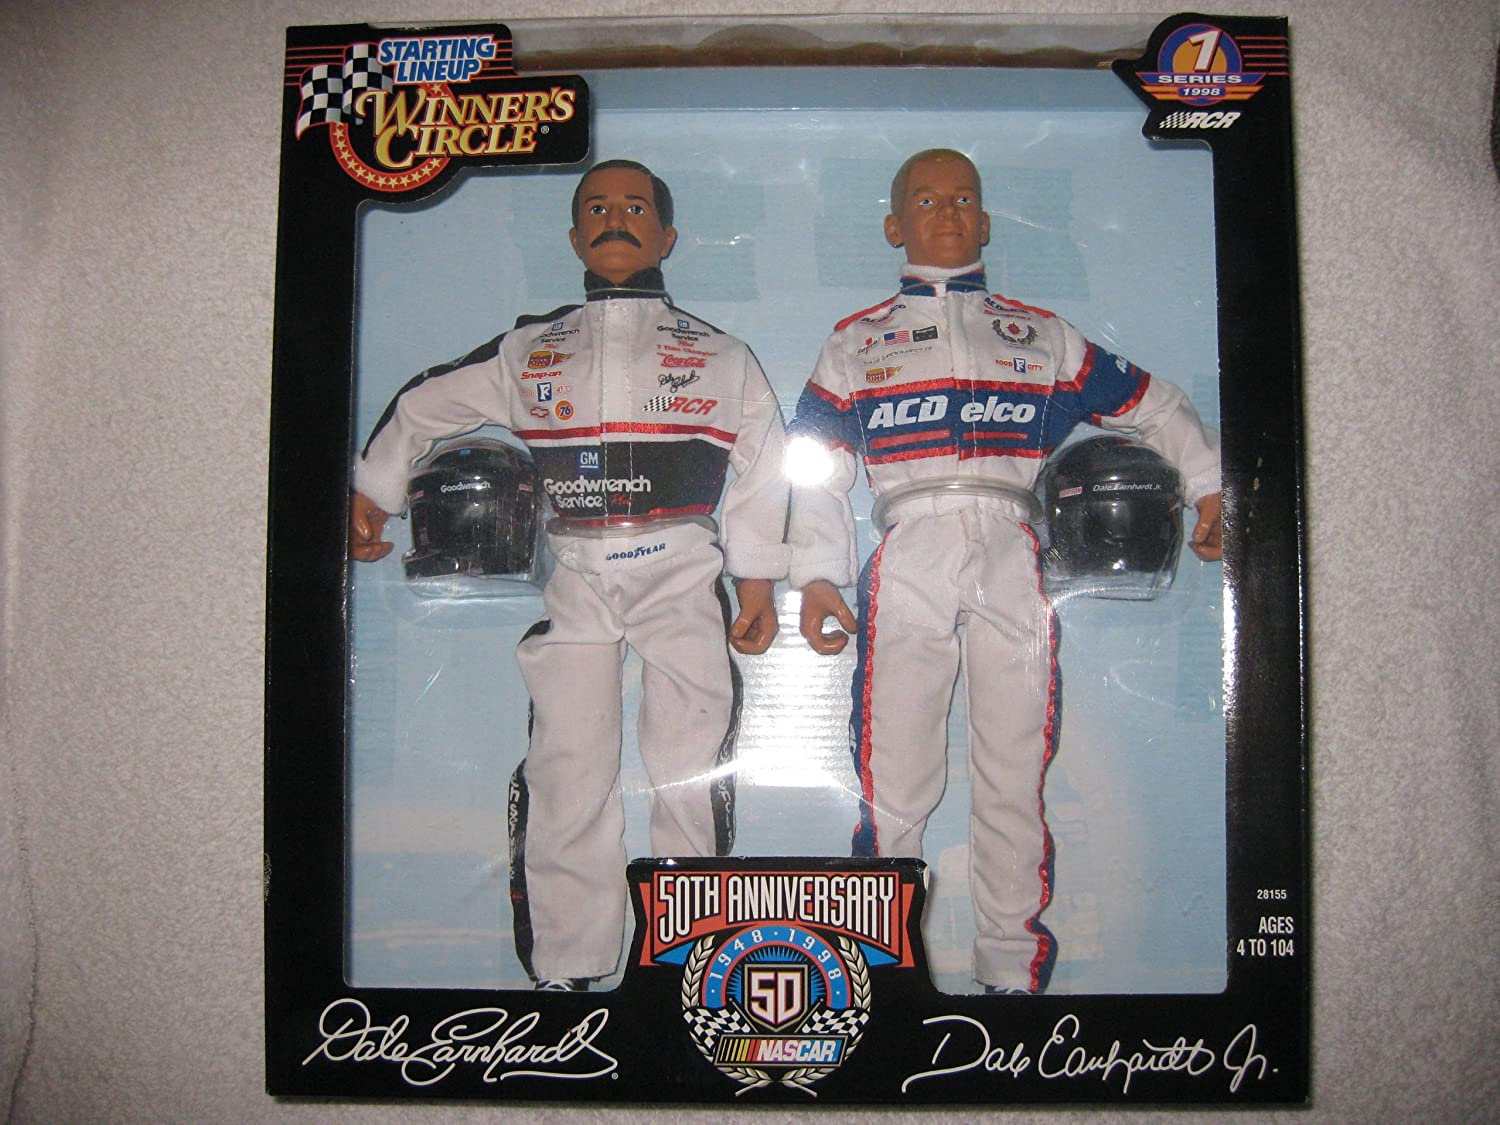 las mejores marcas venden barato 1998 1998 1998 Series 1 Winners Circle 50th Anniversary Starting Lineup Dale Earnhardt and Dale Earnhardt Jr by Kenner  mejor reputación